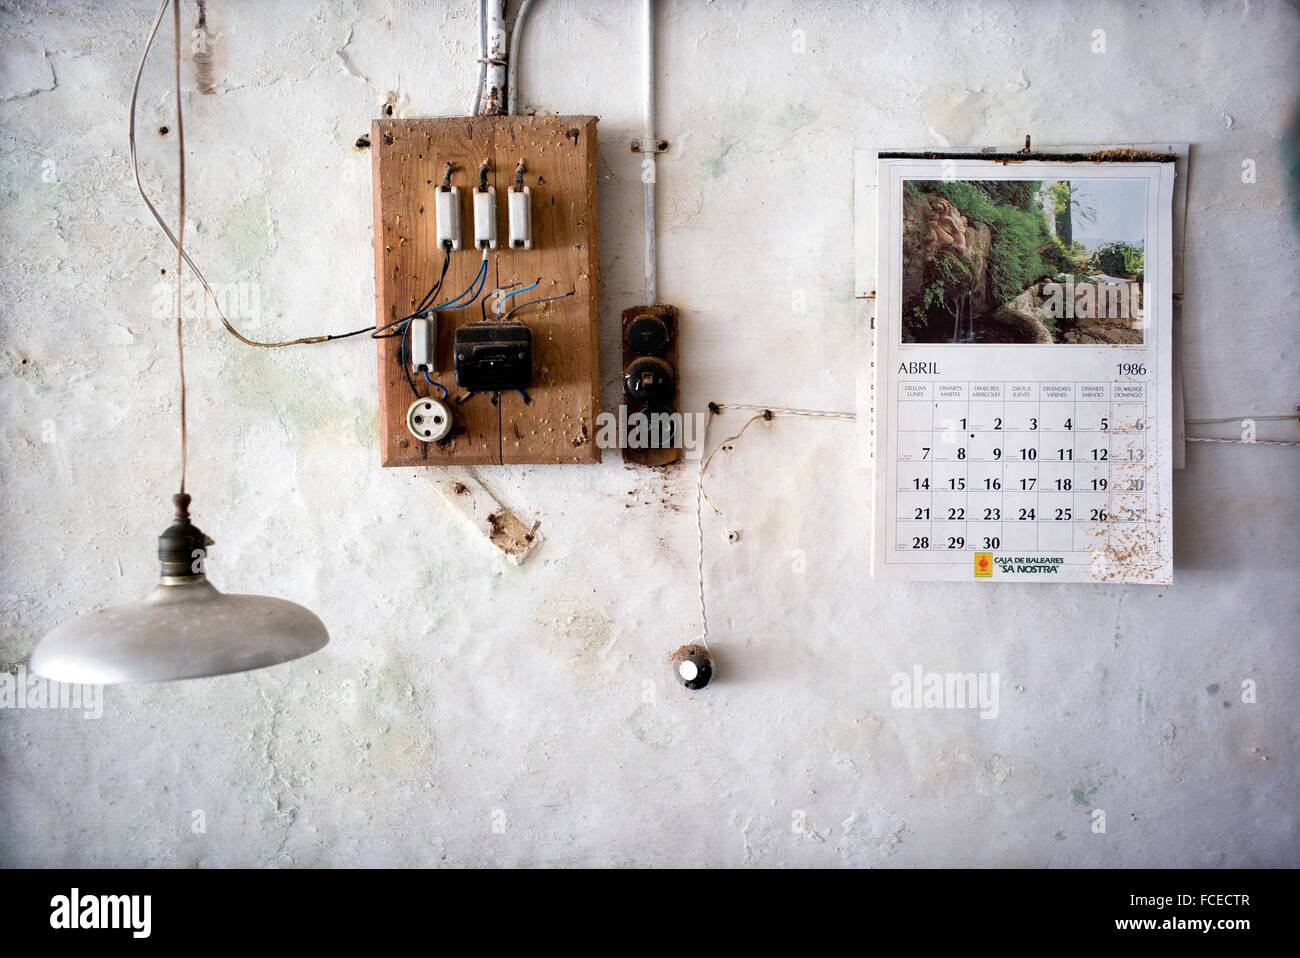 hight resolution of wall of an old workshop with an electrical fuse box and plug a calendar from april 1986 on the wall and a lamp hanging from